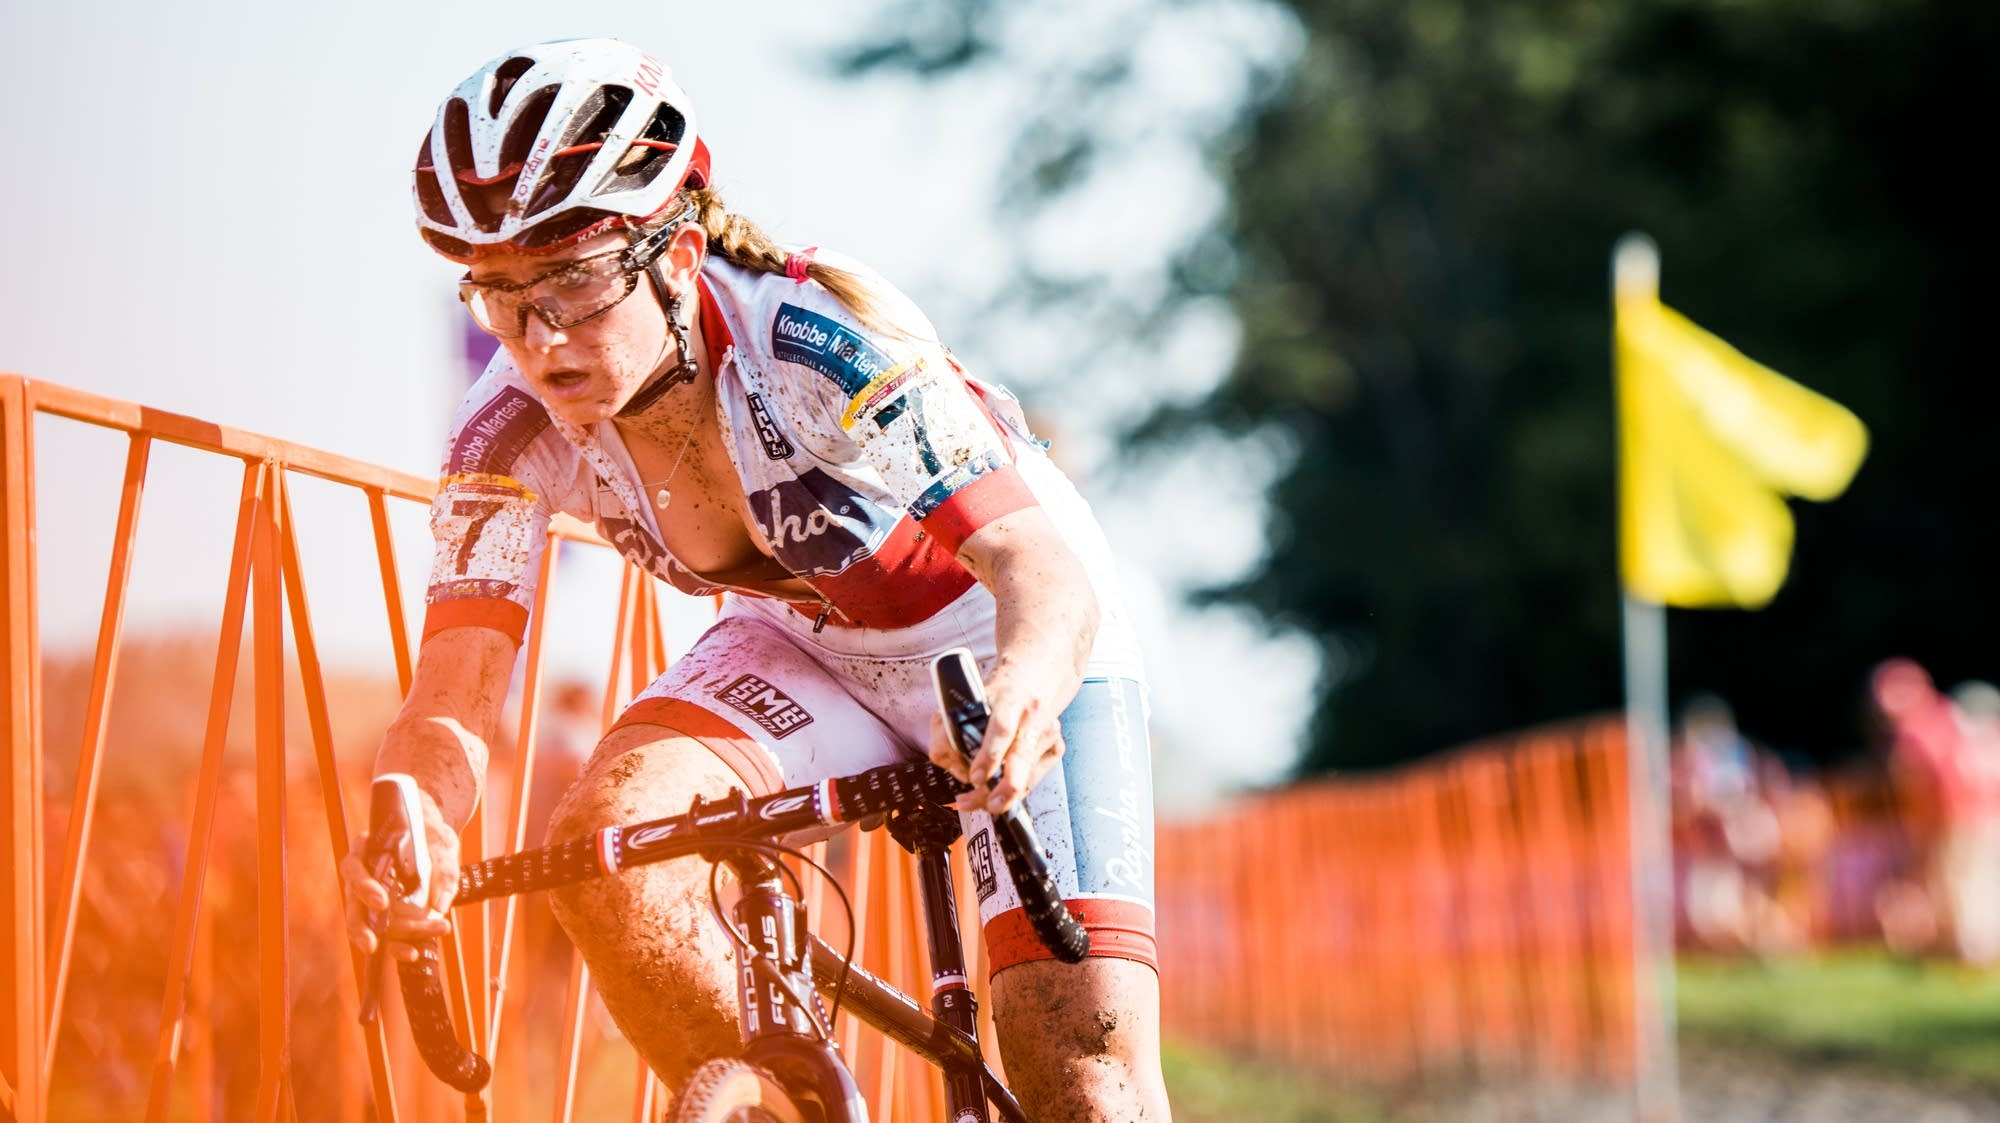 Photos: Mix a road race and mountain bike race, add mud ...